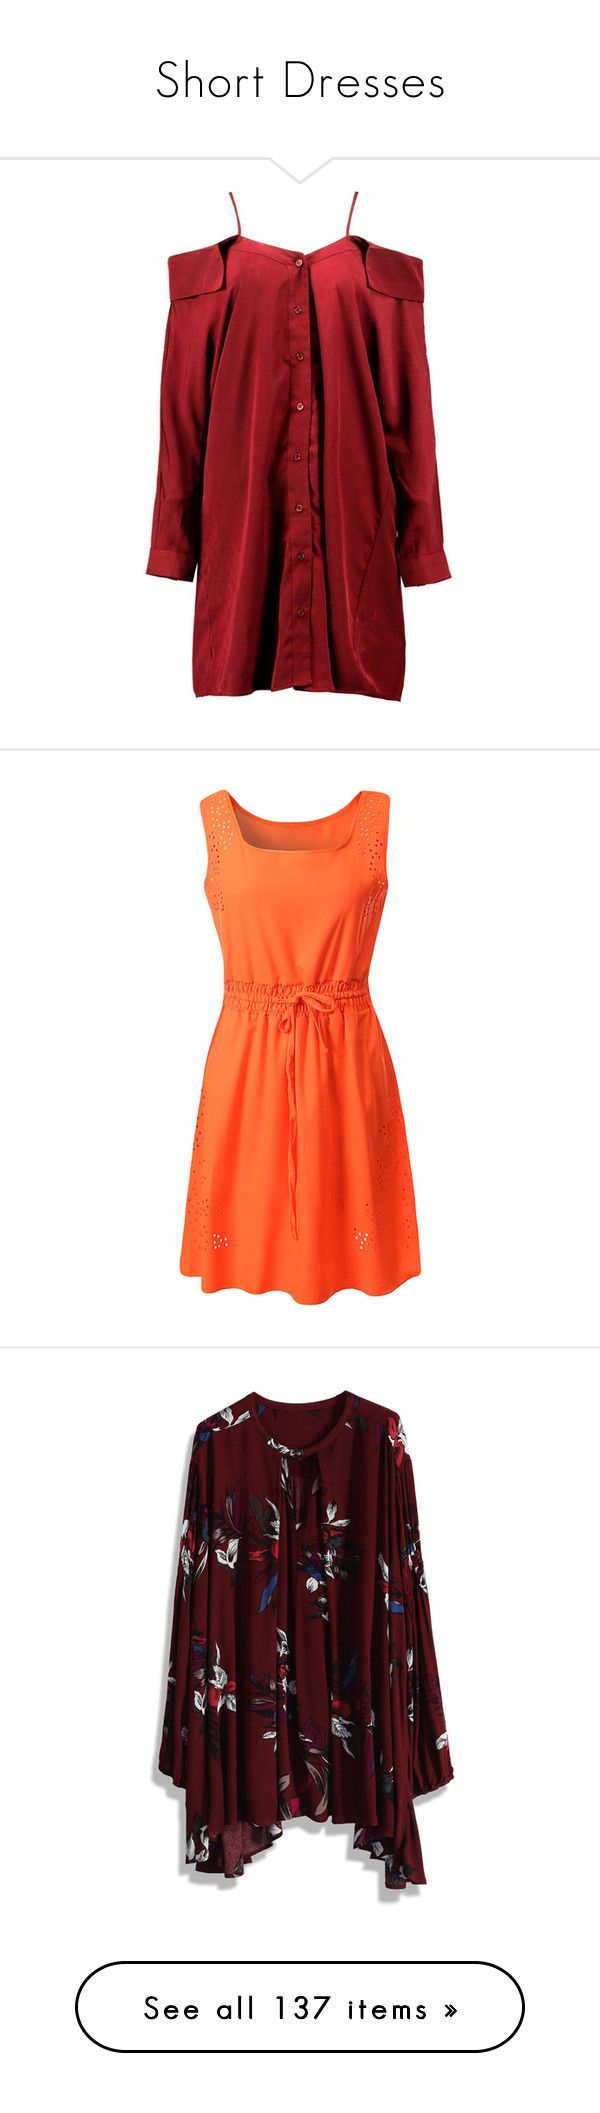 """""""Short Dresses"""" by natalialovesnutella12 ❤ liked on Polyvore featuring dresses, layering cami, body con dress, bodycon evening dresses, special occasion dresses, shirt dress, orange, vestidos, orange midi dress and red orange dress"""